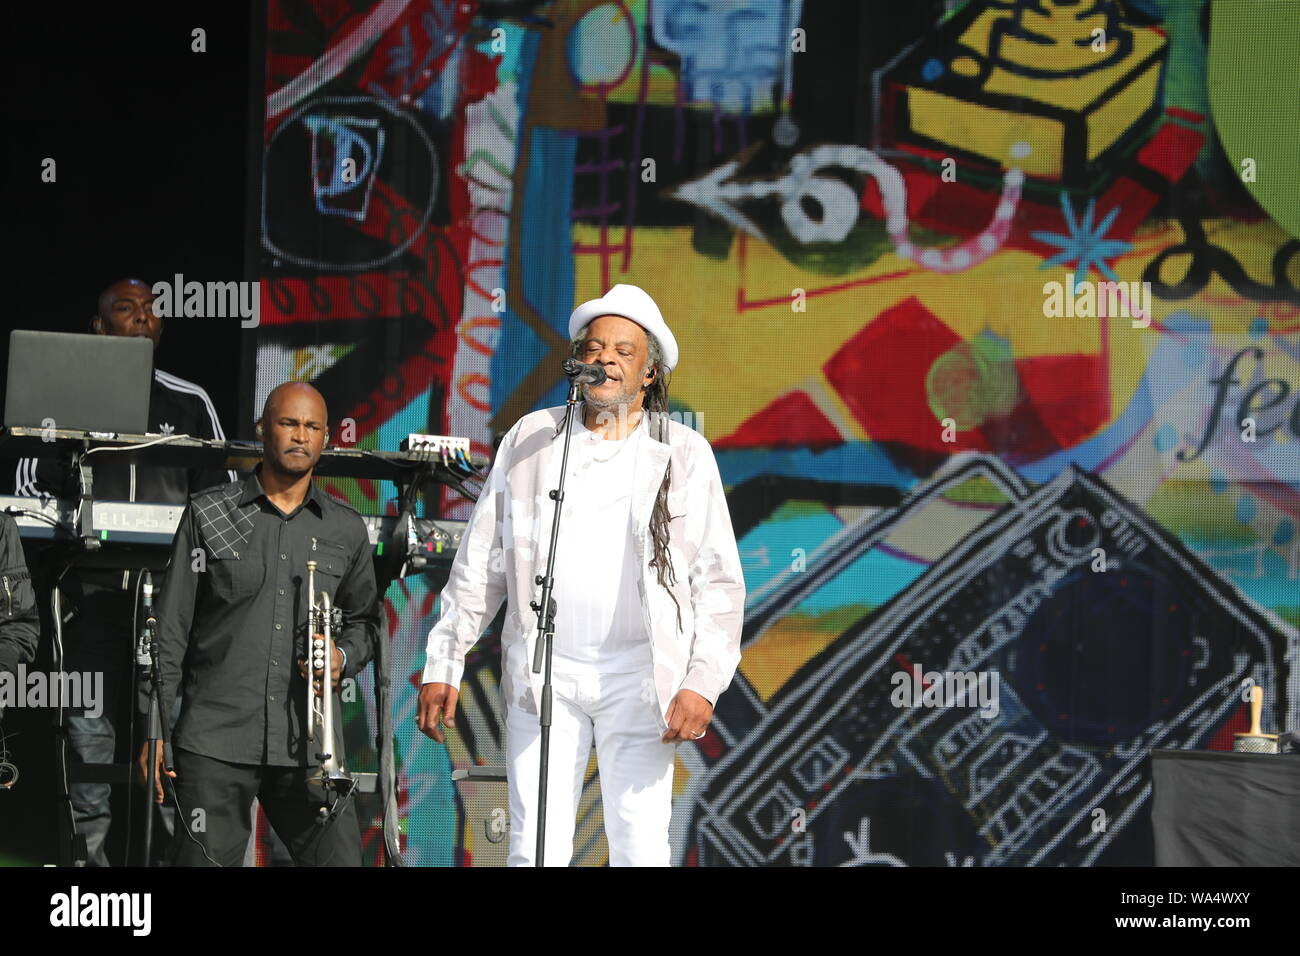 Ub40 Stock Photos & Ub40 Stock Images - Alamy